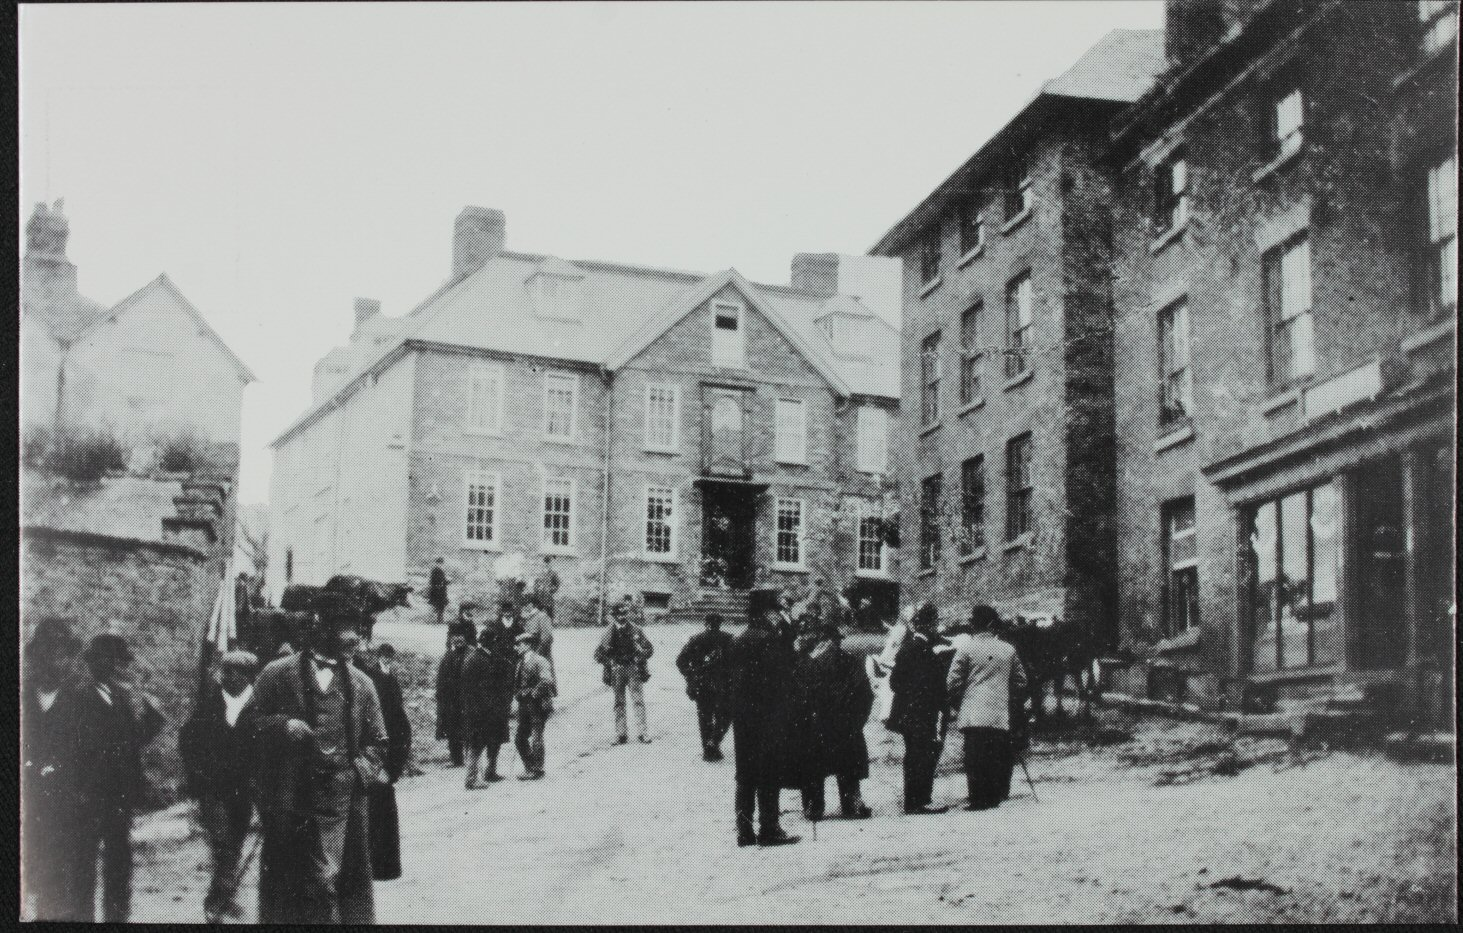 Cattle for Sale in the Street 1900